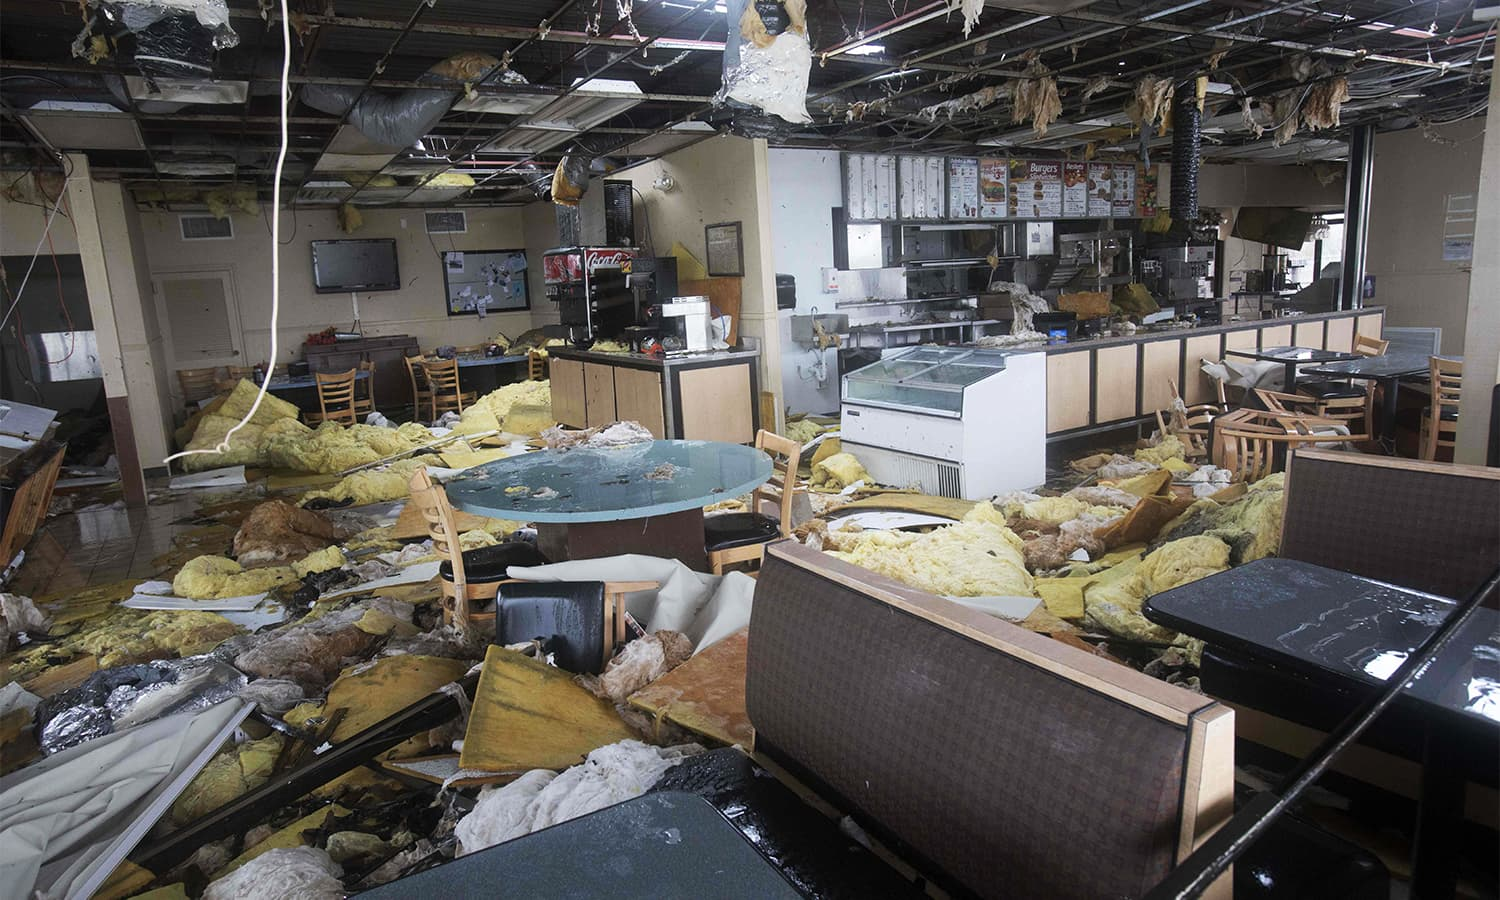 A Dairy Queen restaurant in South Texas was almost completely destroyed by Hurricane Harvey. — AFP